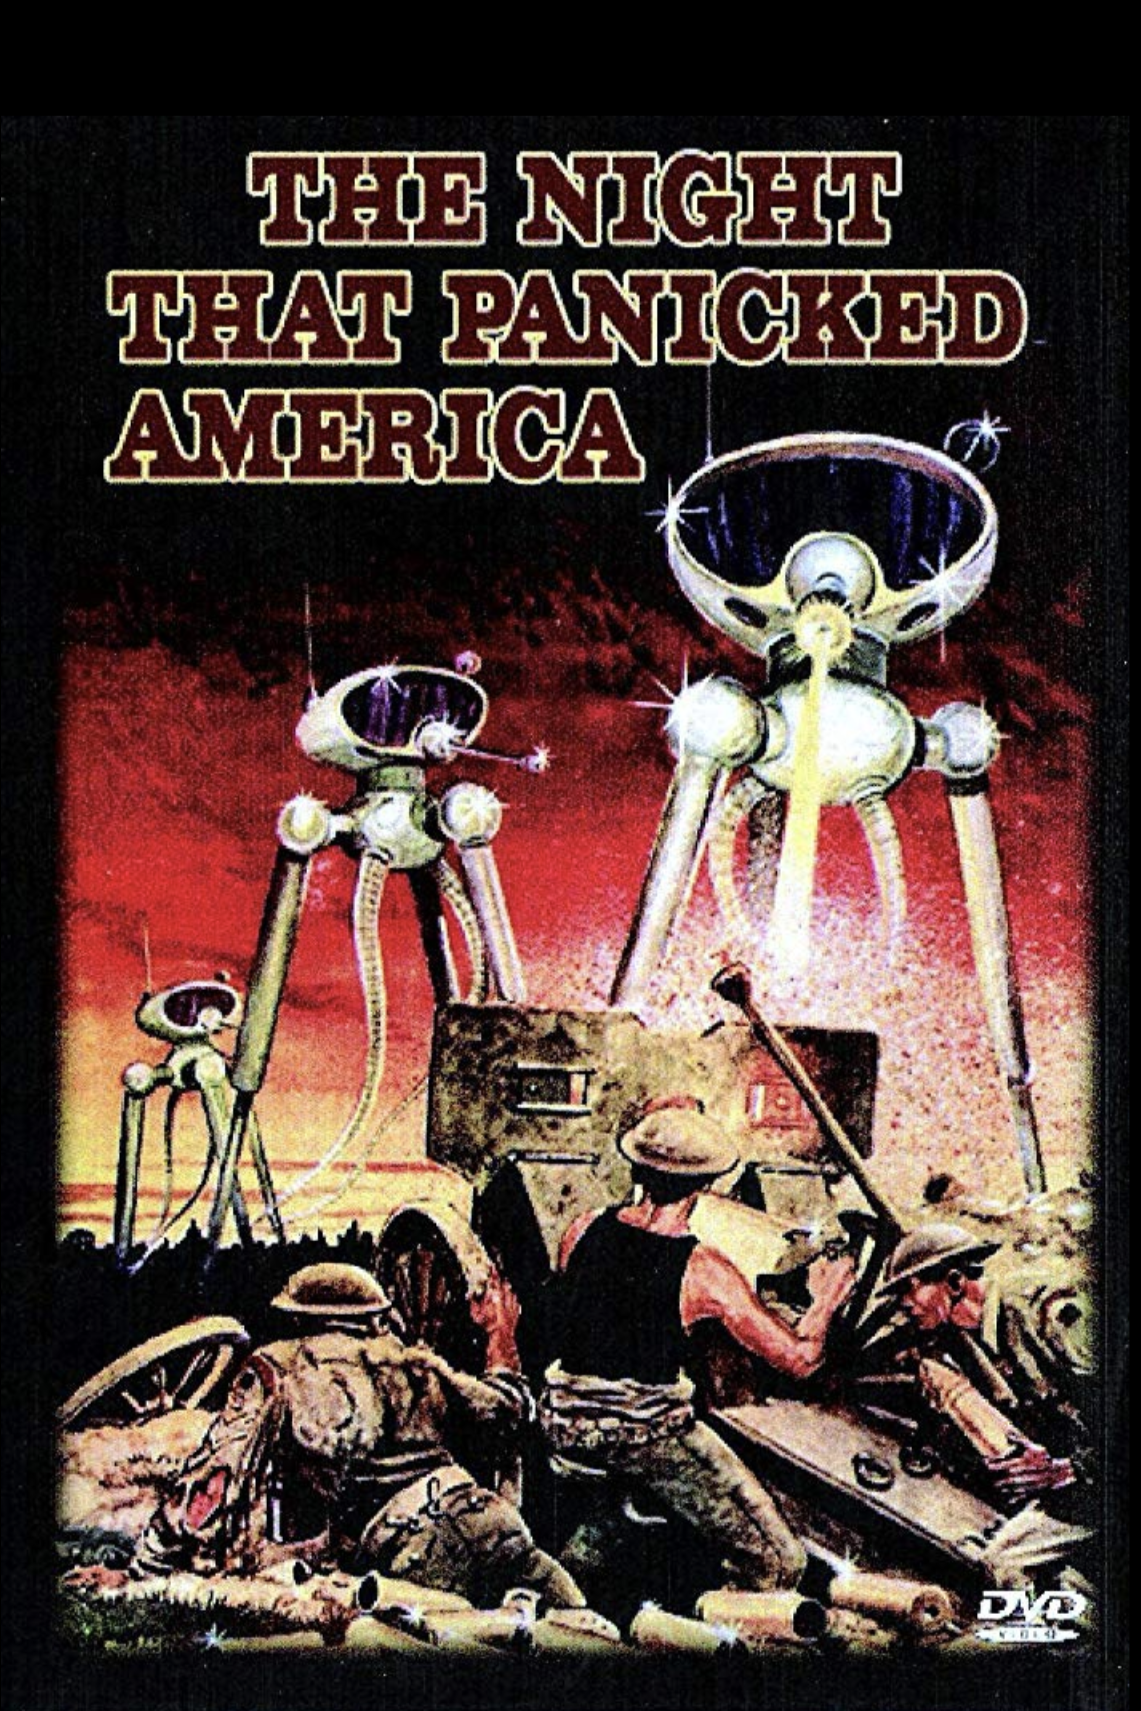 1975 The Night That Panicked America